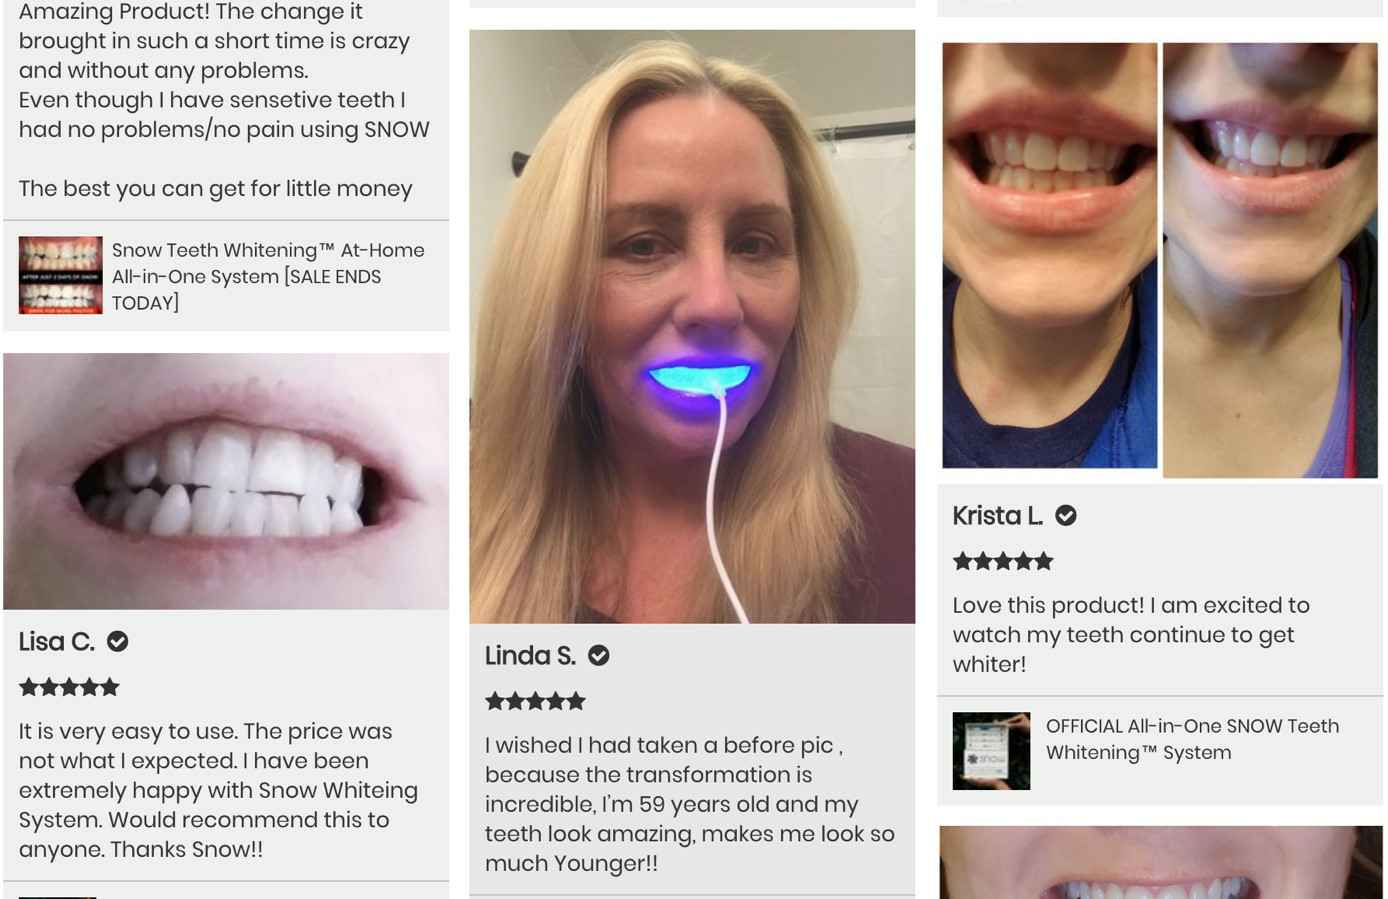 Snow Teeth Whitening Outlet Store Near Me